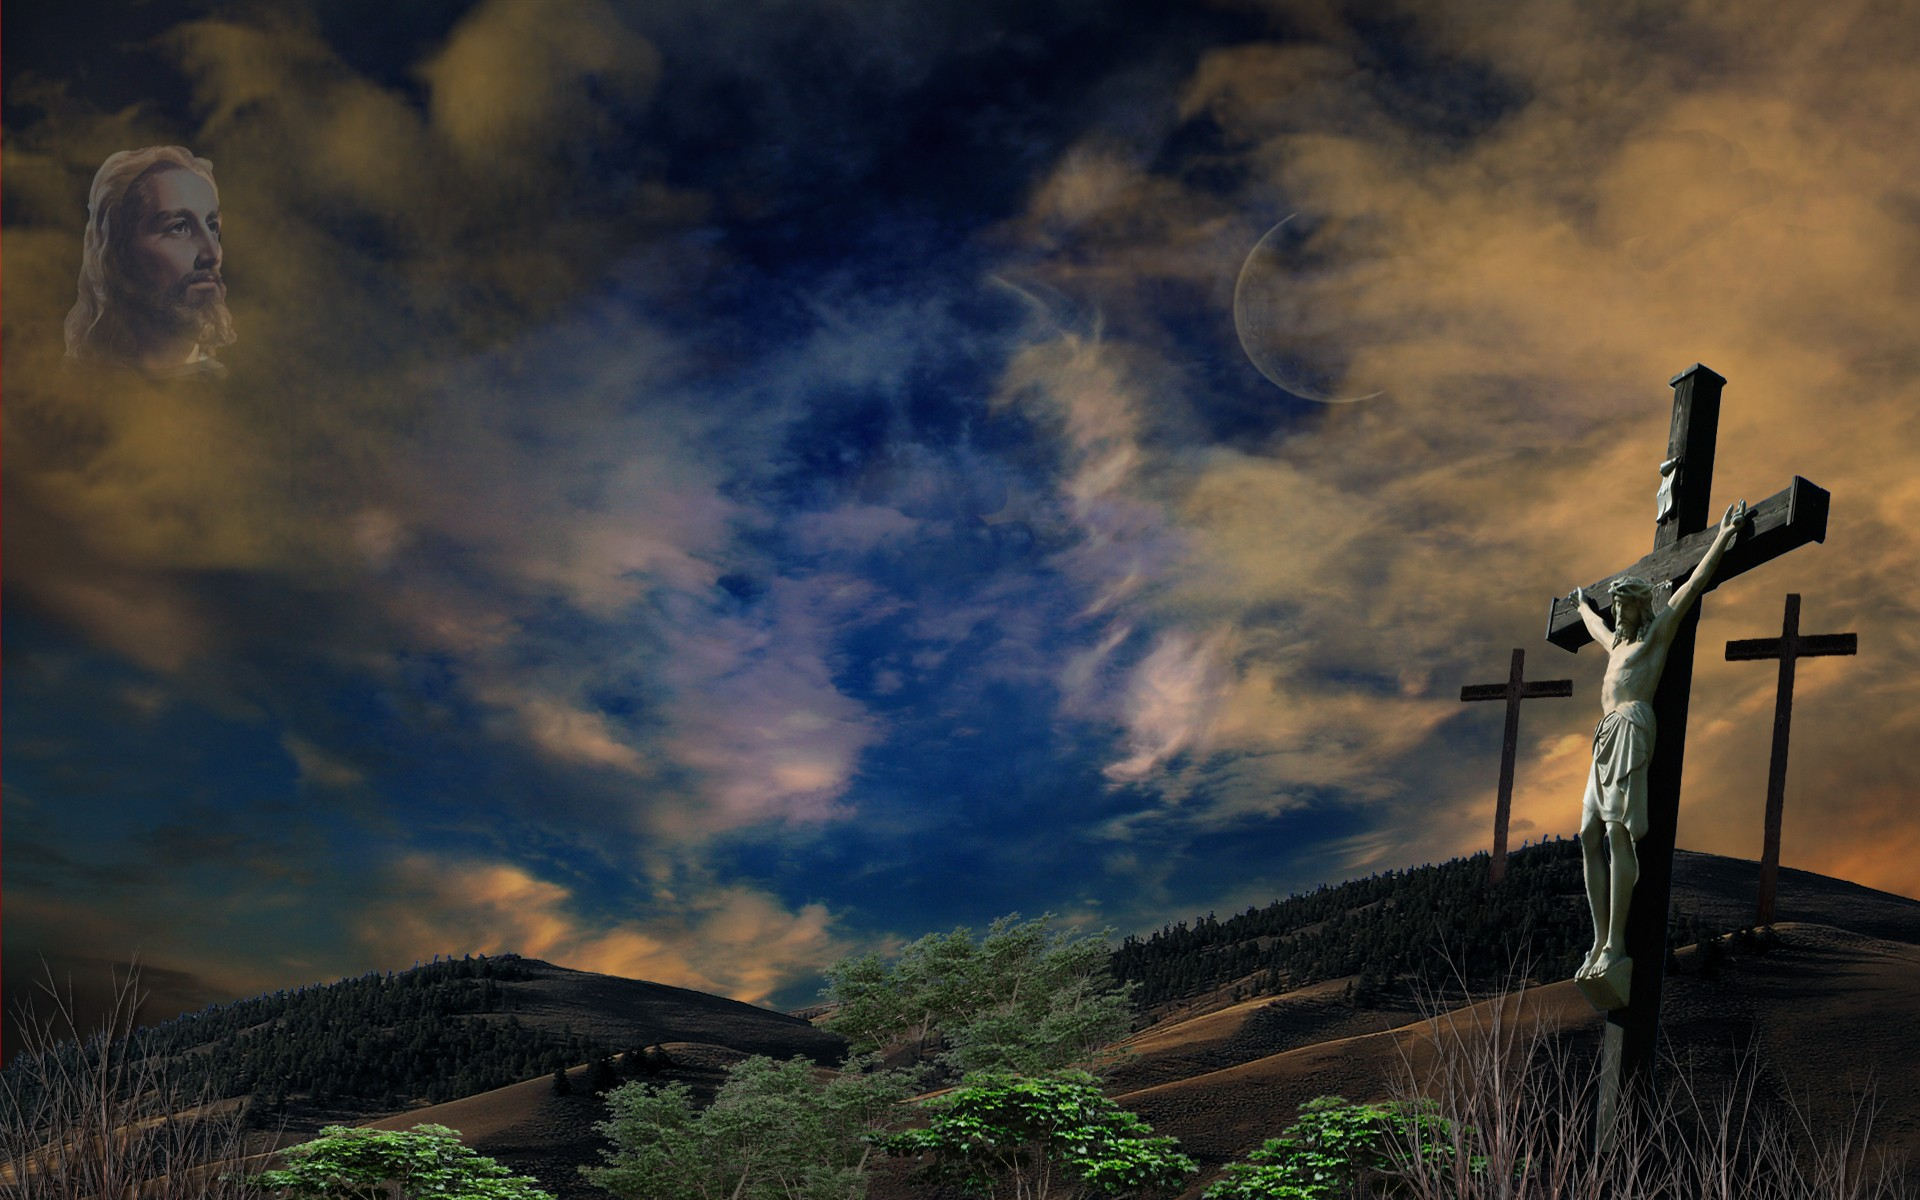 Good Friday Wallpapers Images Photos Pictures Backgrounds | 1920 x 1200 jpeg 395kB